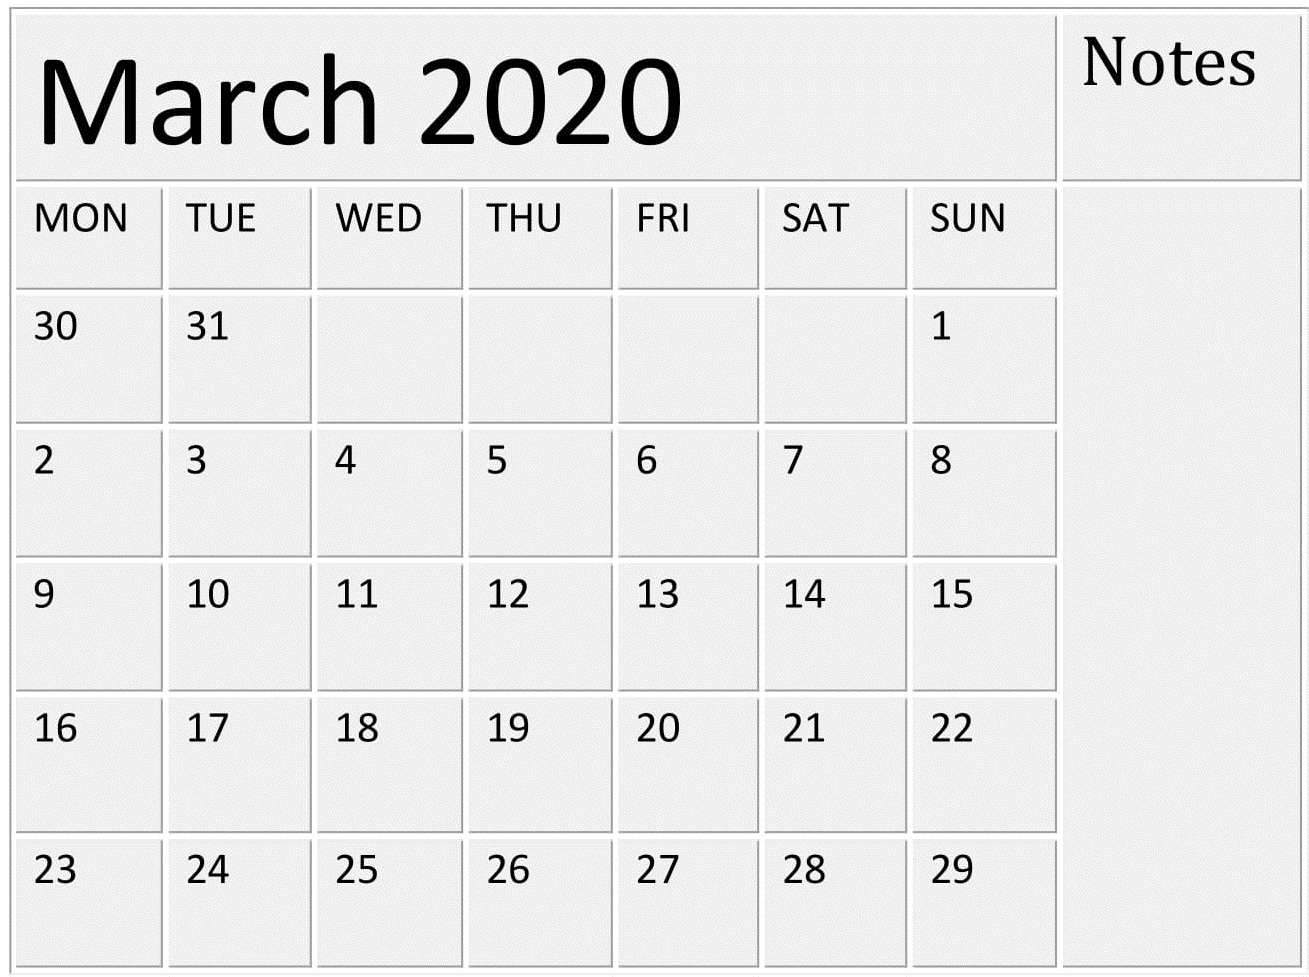 Free Printable March 2020 Calendarmonth Template - Free inside Free Printable Monthly 2020 Calendar